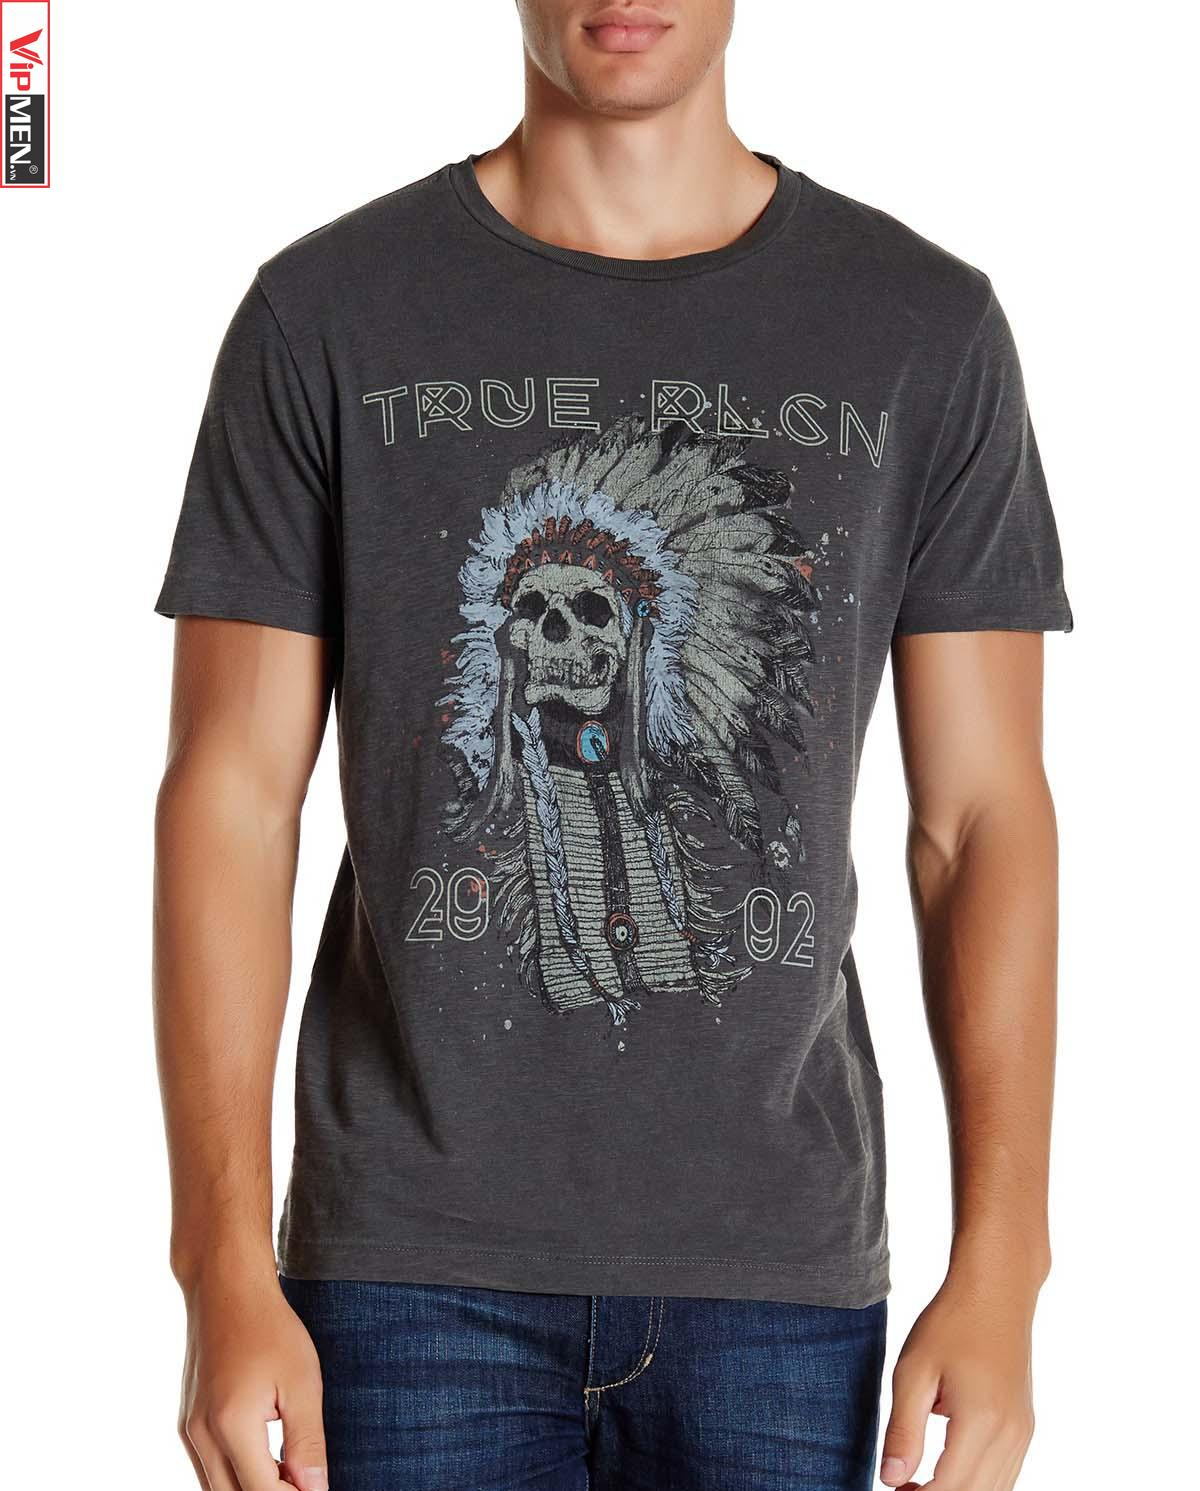 Áo thun True Religion XL